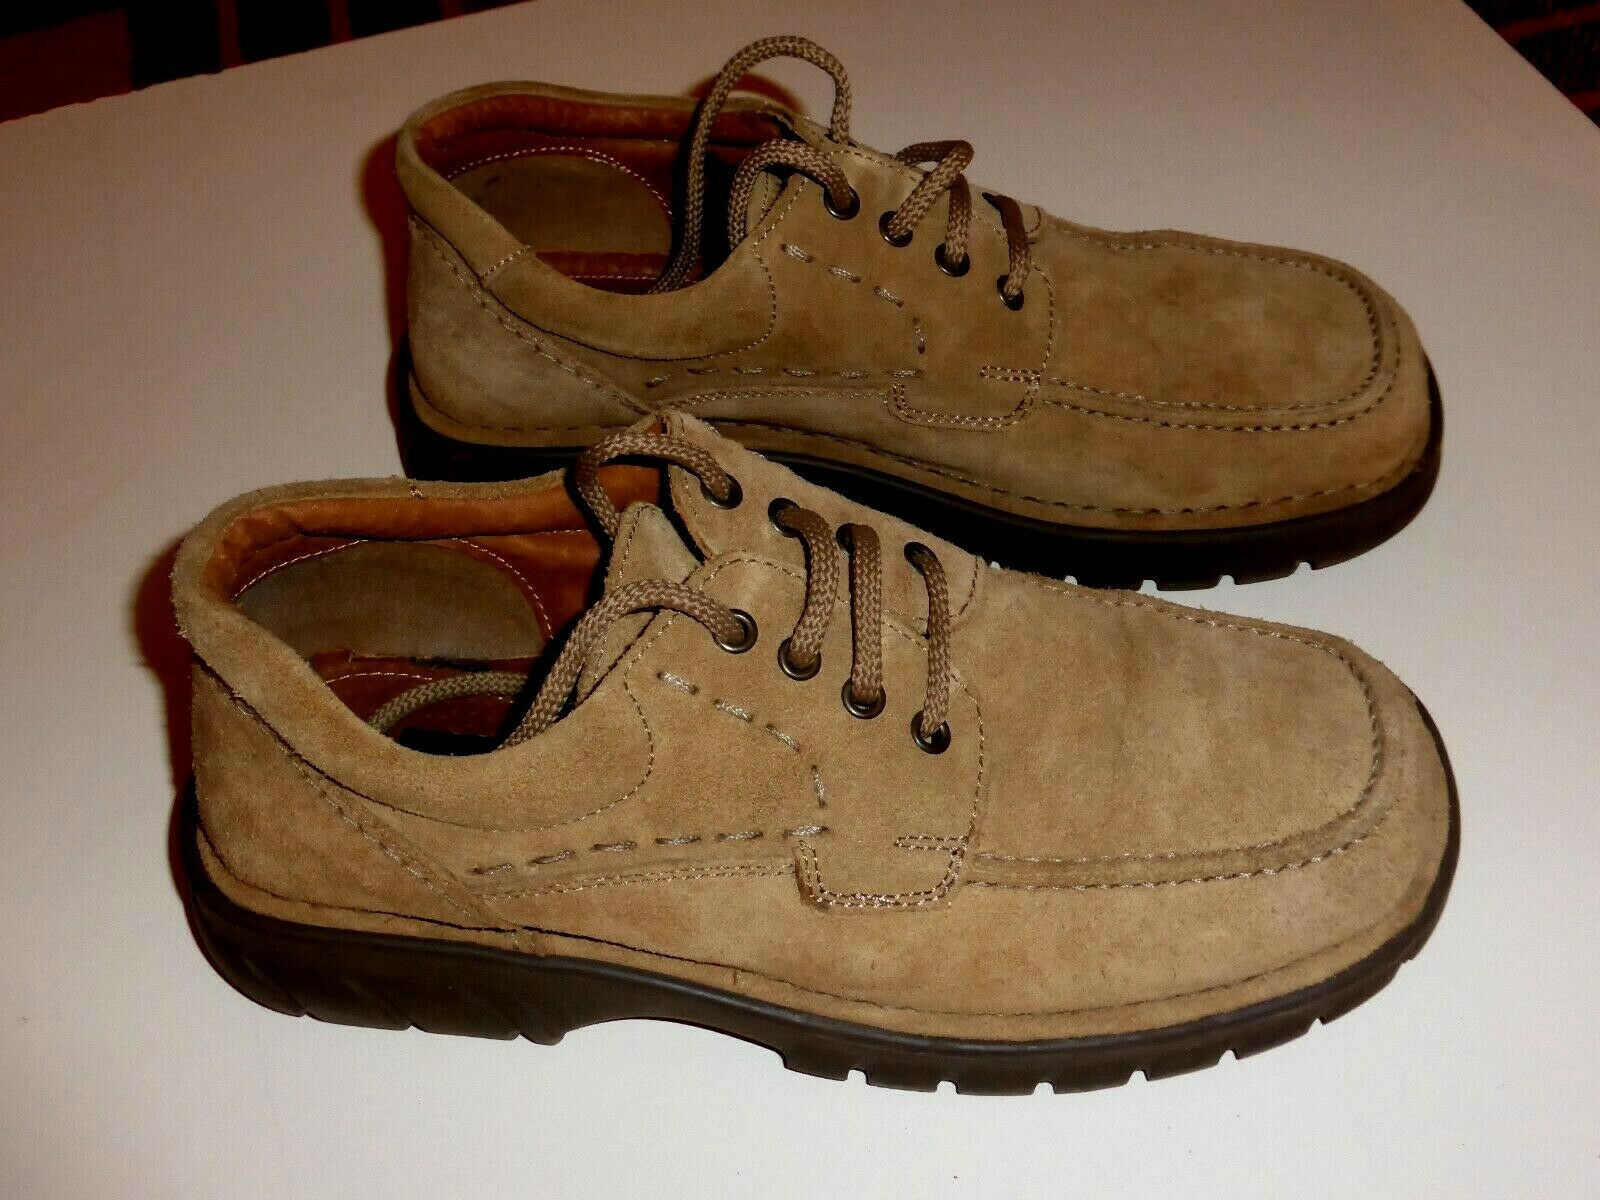 CUCITO A MANO MENS SUEDE LEATHER SHOES size 7 Superb condition.